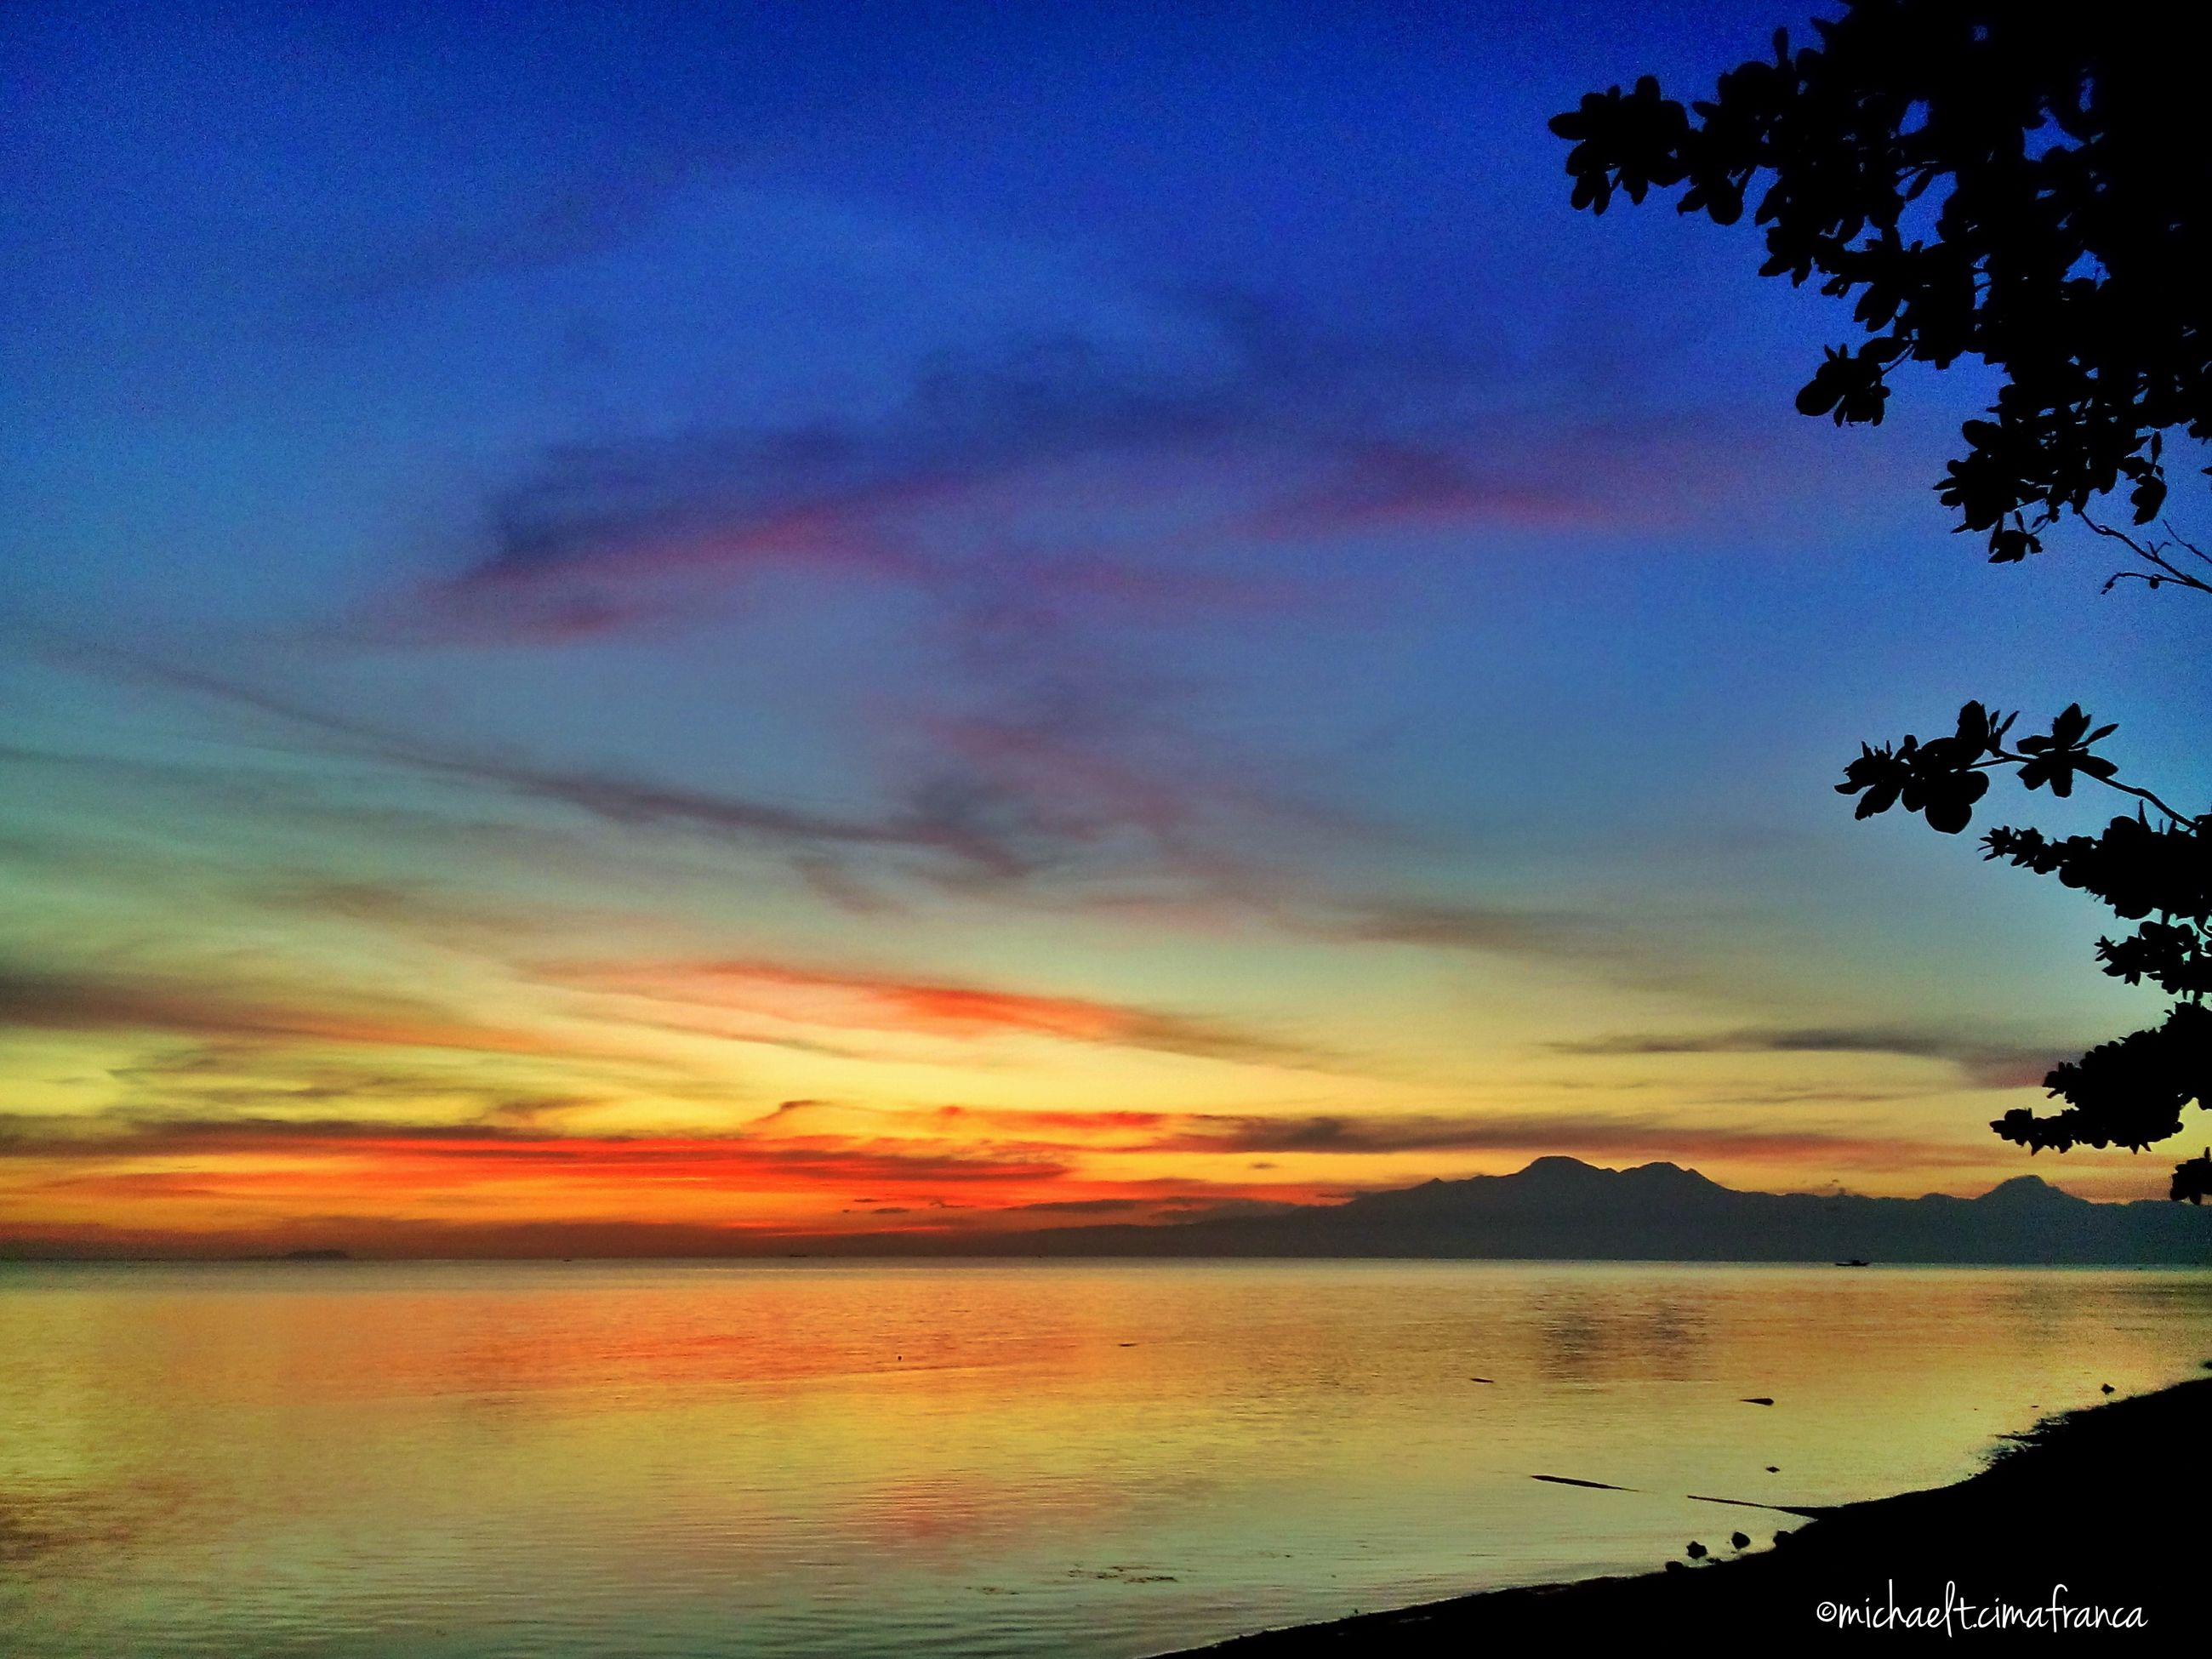 scenics, tranquil scene, sky, water, tranquility, beauty in nature, sunset, sea, cloud - sky, nature, idyllic, cloud, silhouette, mountain, lake, dusk, cloudy, calm, outdoors, non-urban scene